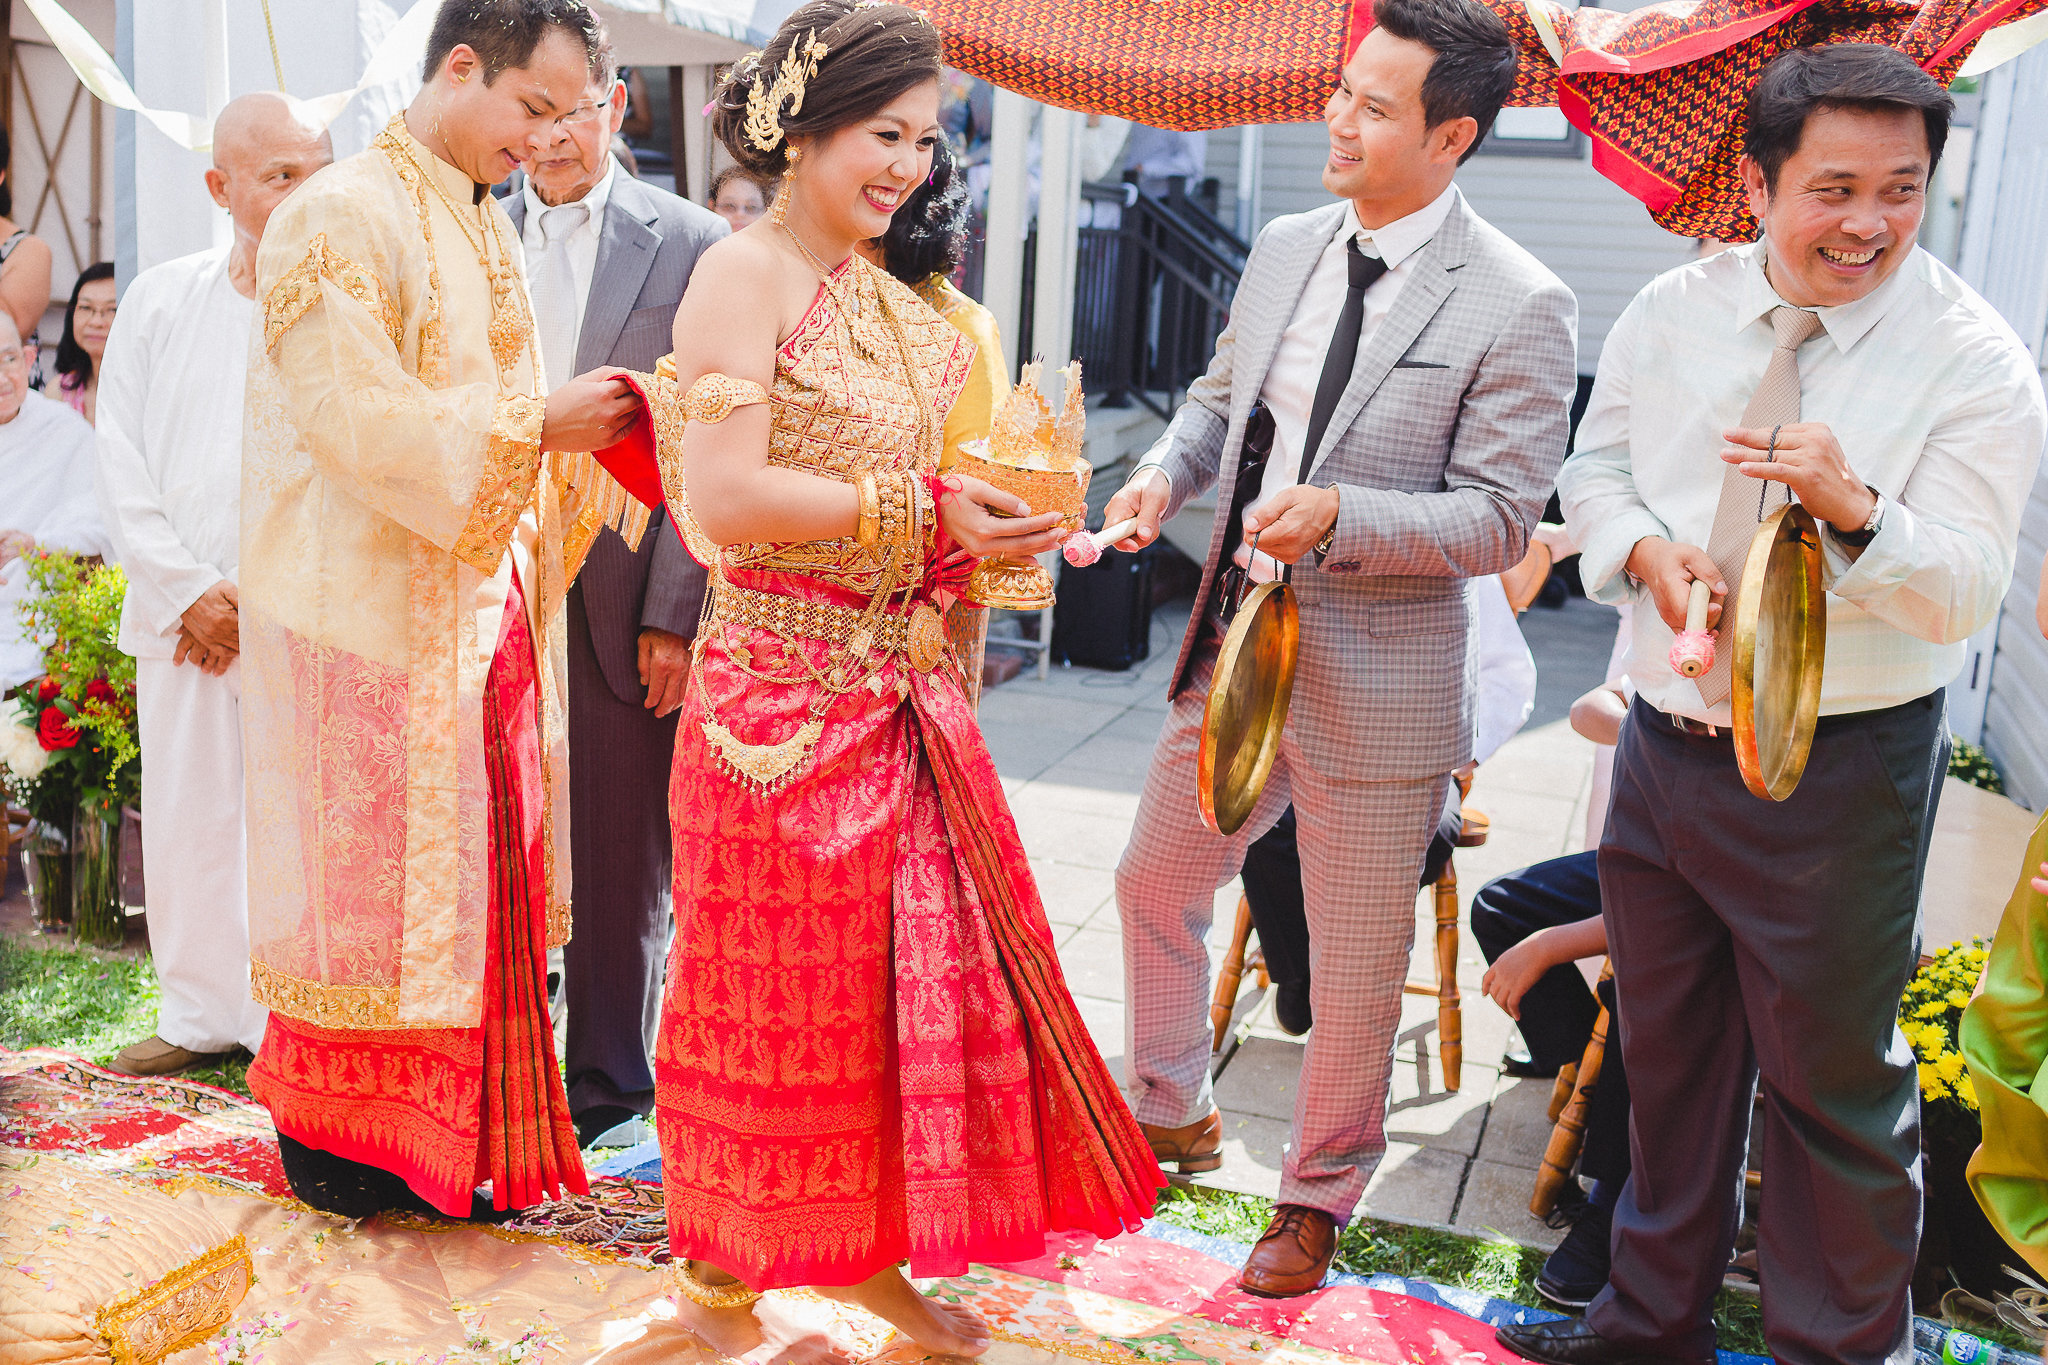 photographe-montreal-mariage-culturel-traditionnel-cambodgien-lisa-renault-photographie-traditional-cultural-cambodian-wedding-79